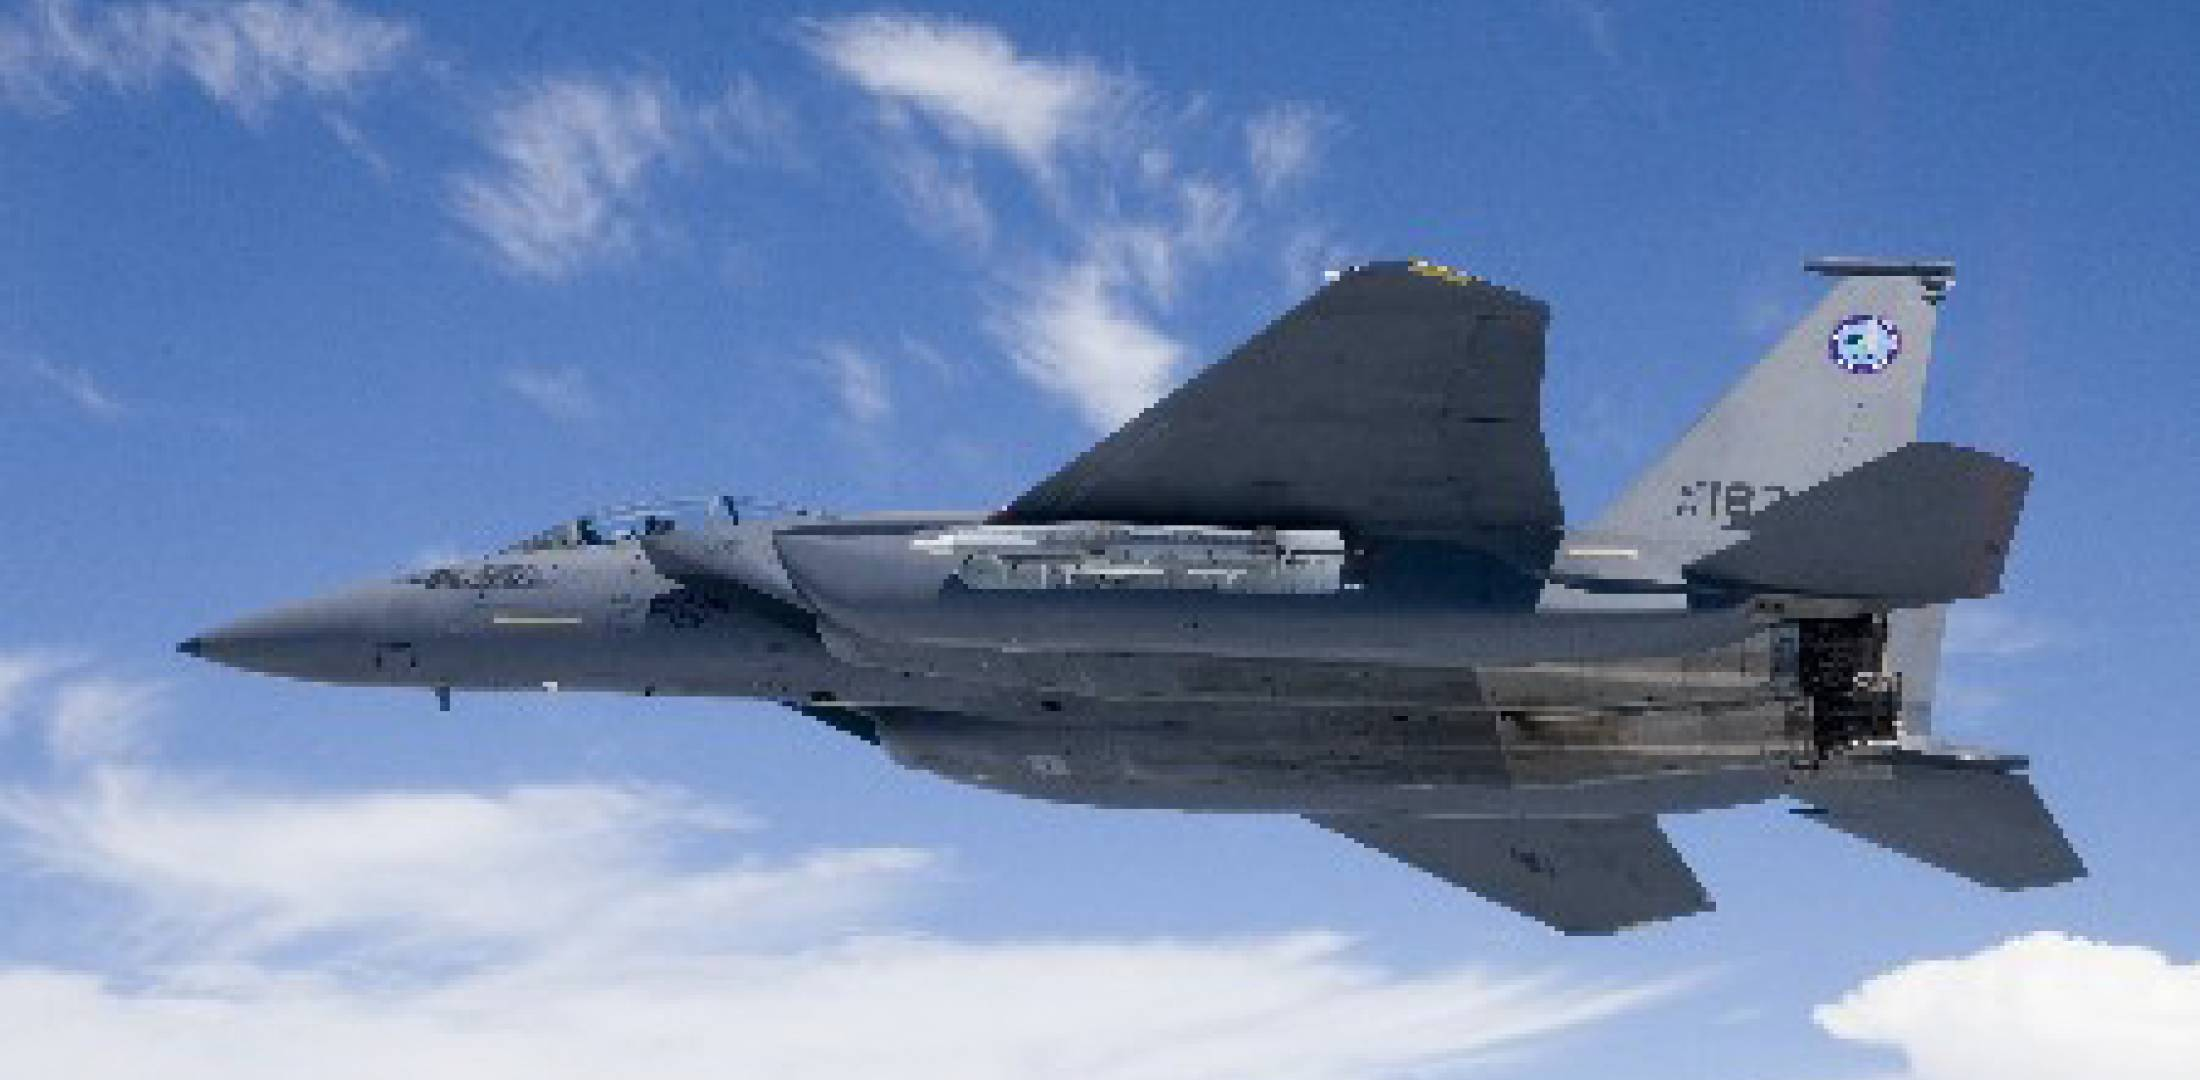 The Silent Eagle testbed is a modified F-15E (the original prototype). On its...